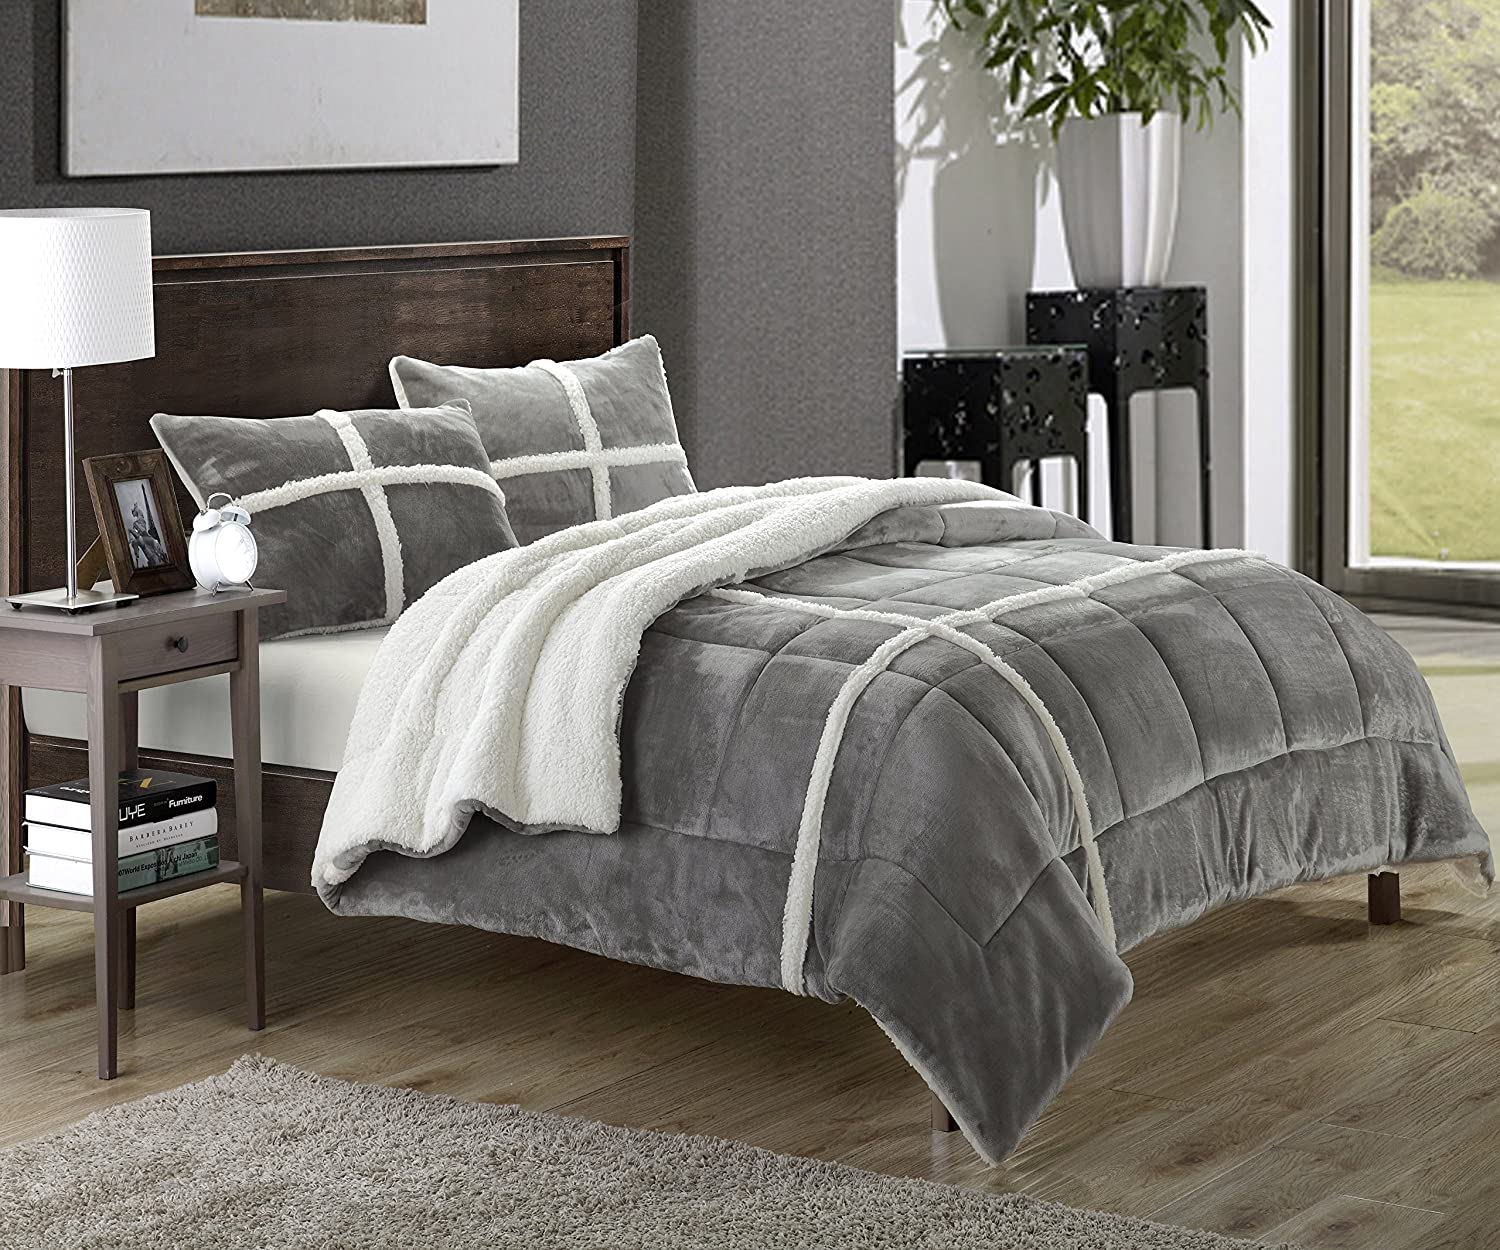 Black And Silver Bed Black And Silver Bedding Sets Ease Bedding With Style